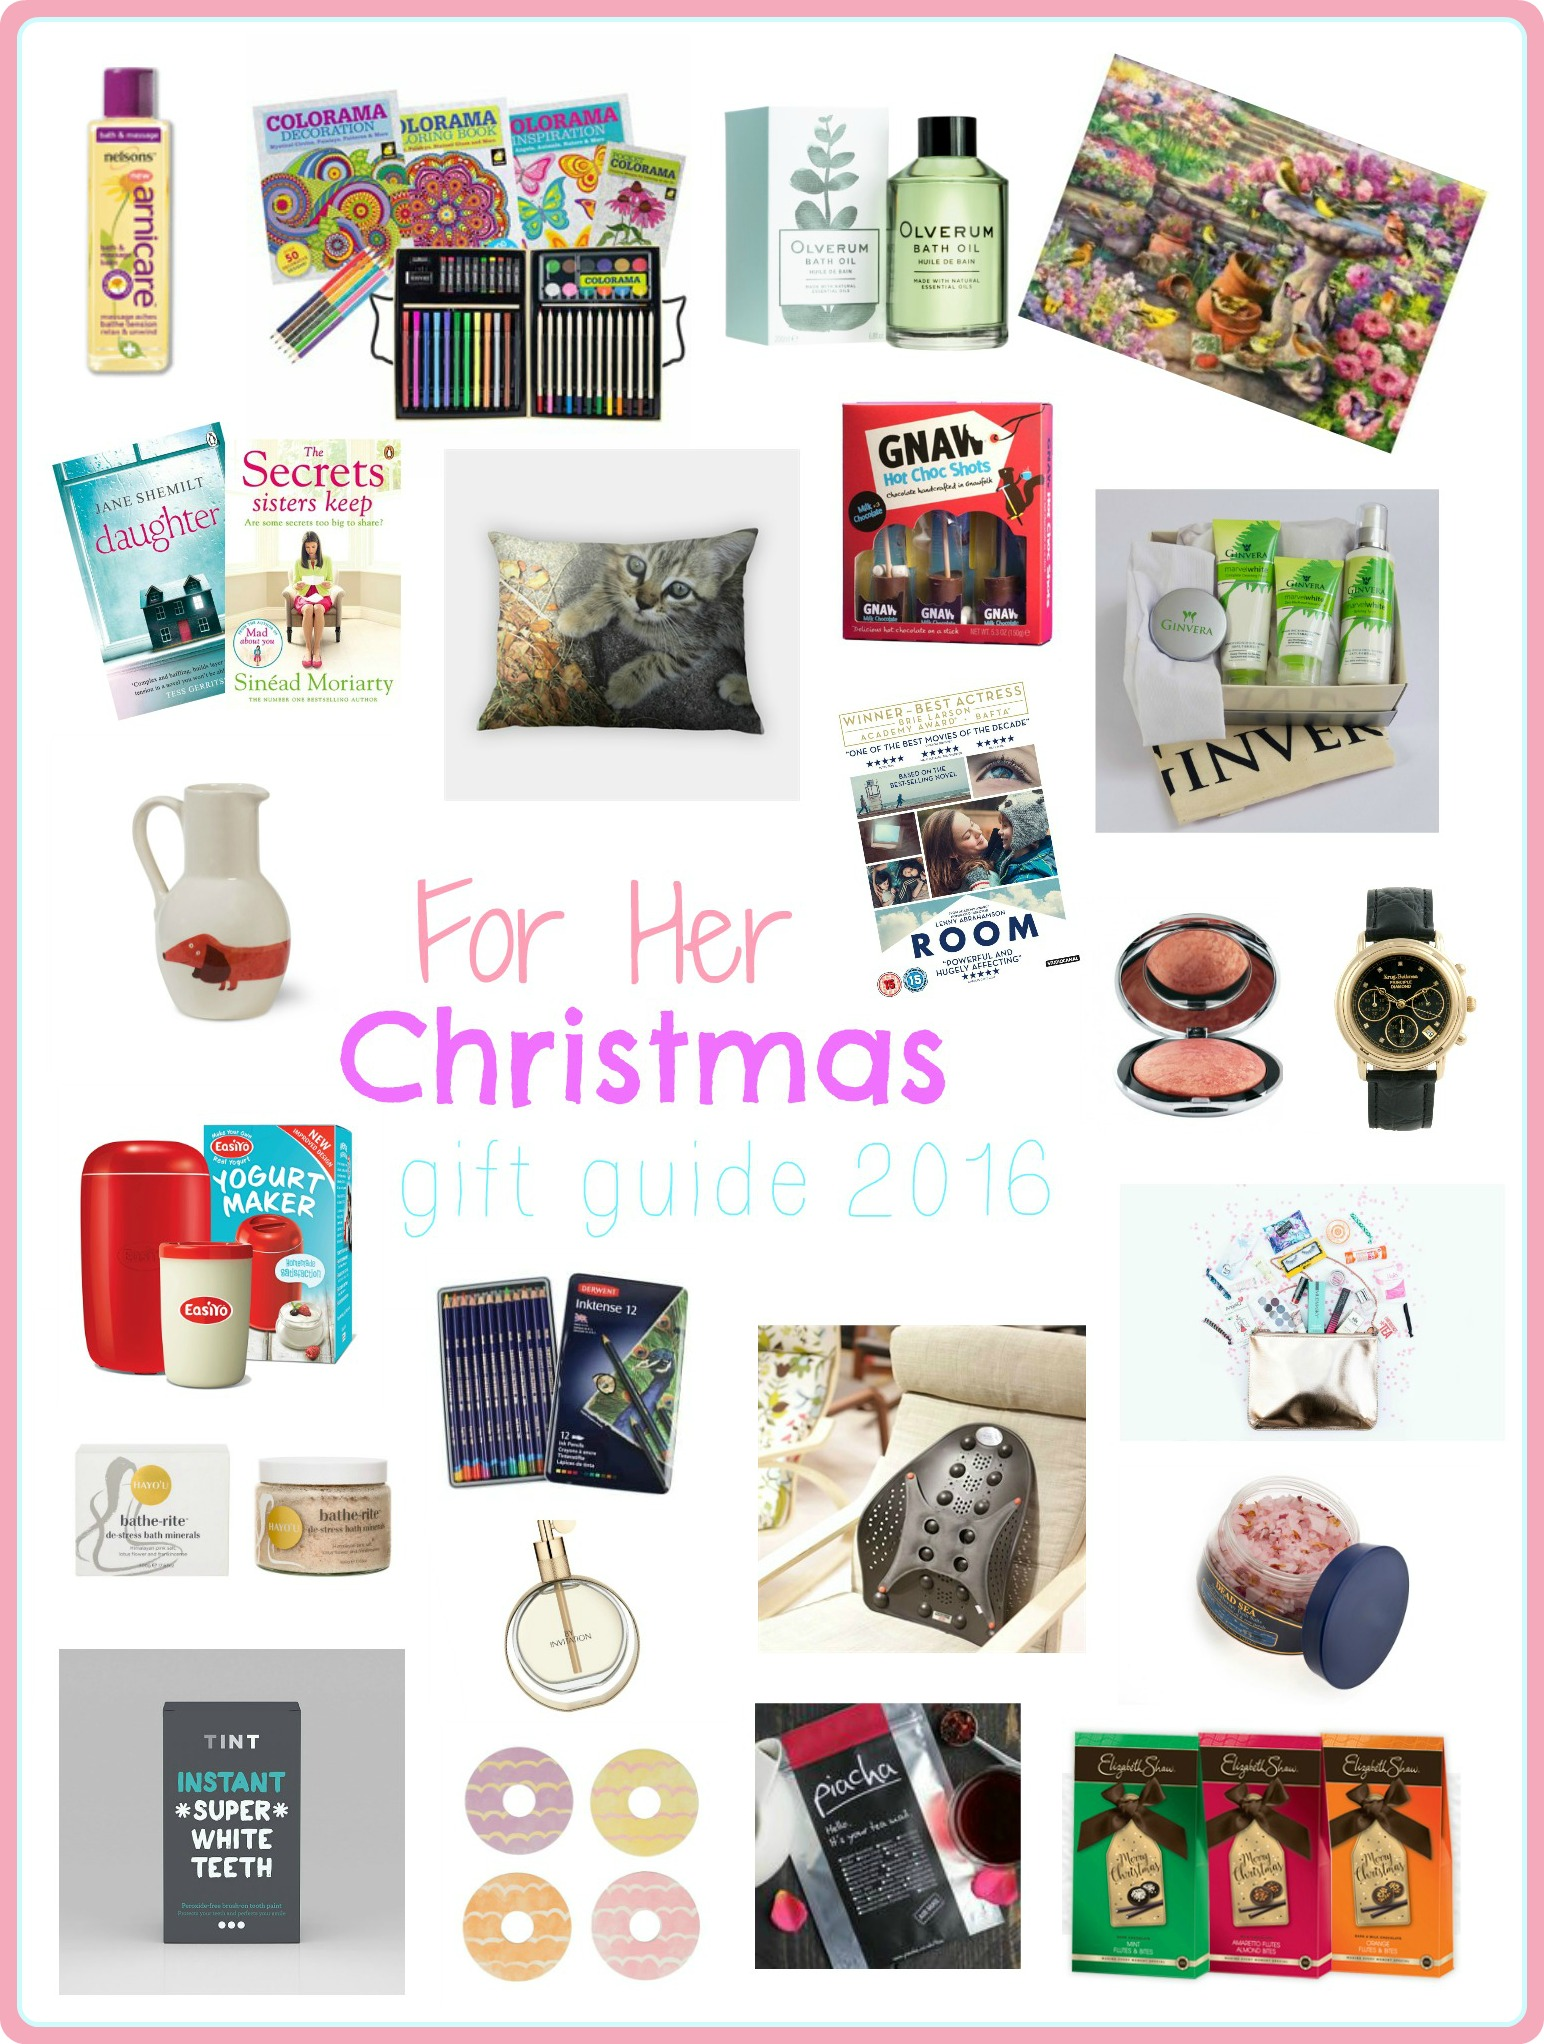 Serenity You's For Her Christmas Gift Guide 2016